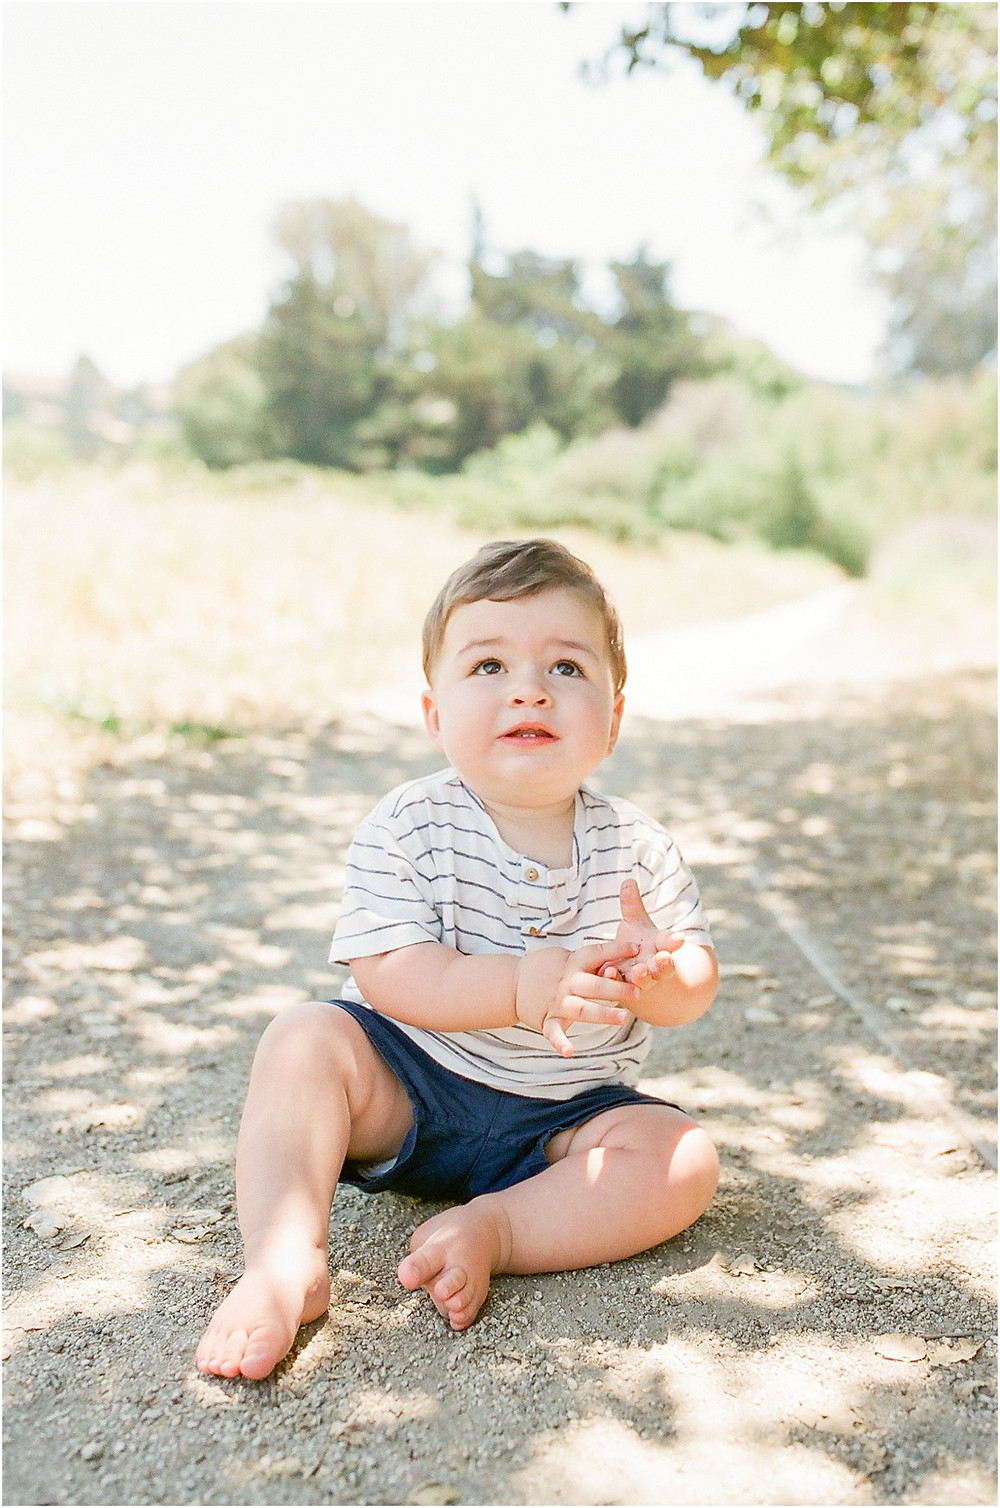 Mill Valley Marin North Bay first year one years old portrait photography session shot on film by fine art bright and airy lifestyle photographer Torrey Fox